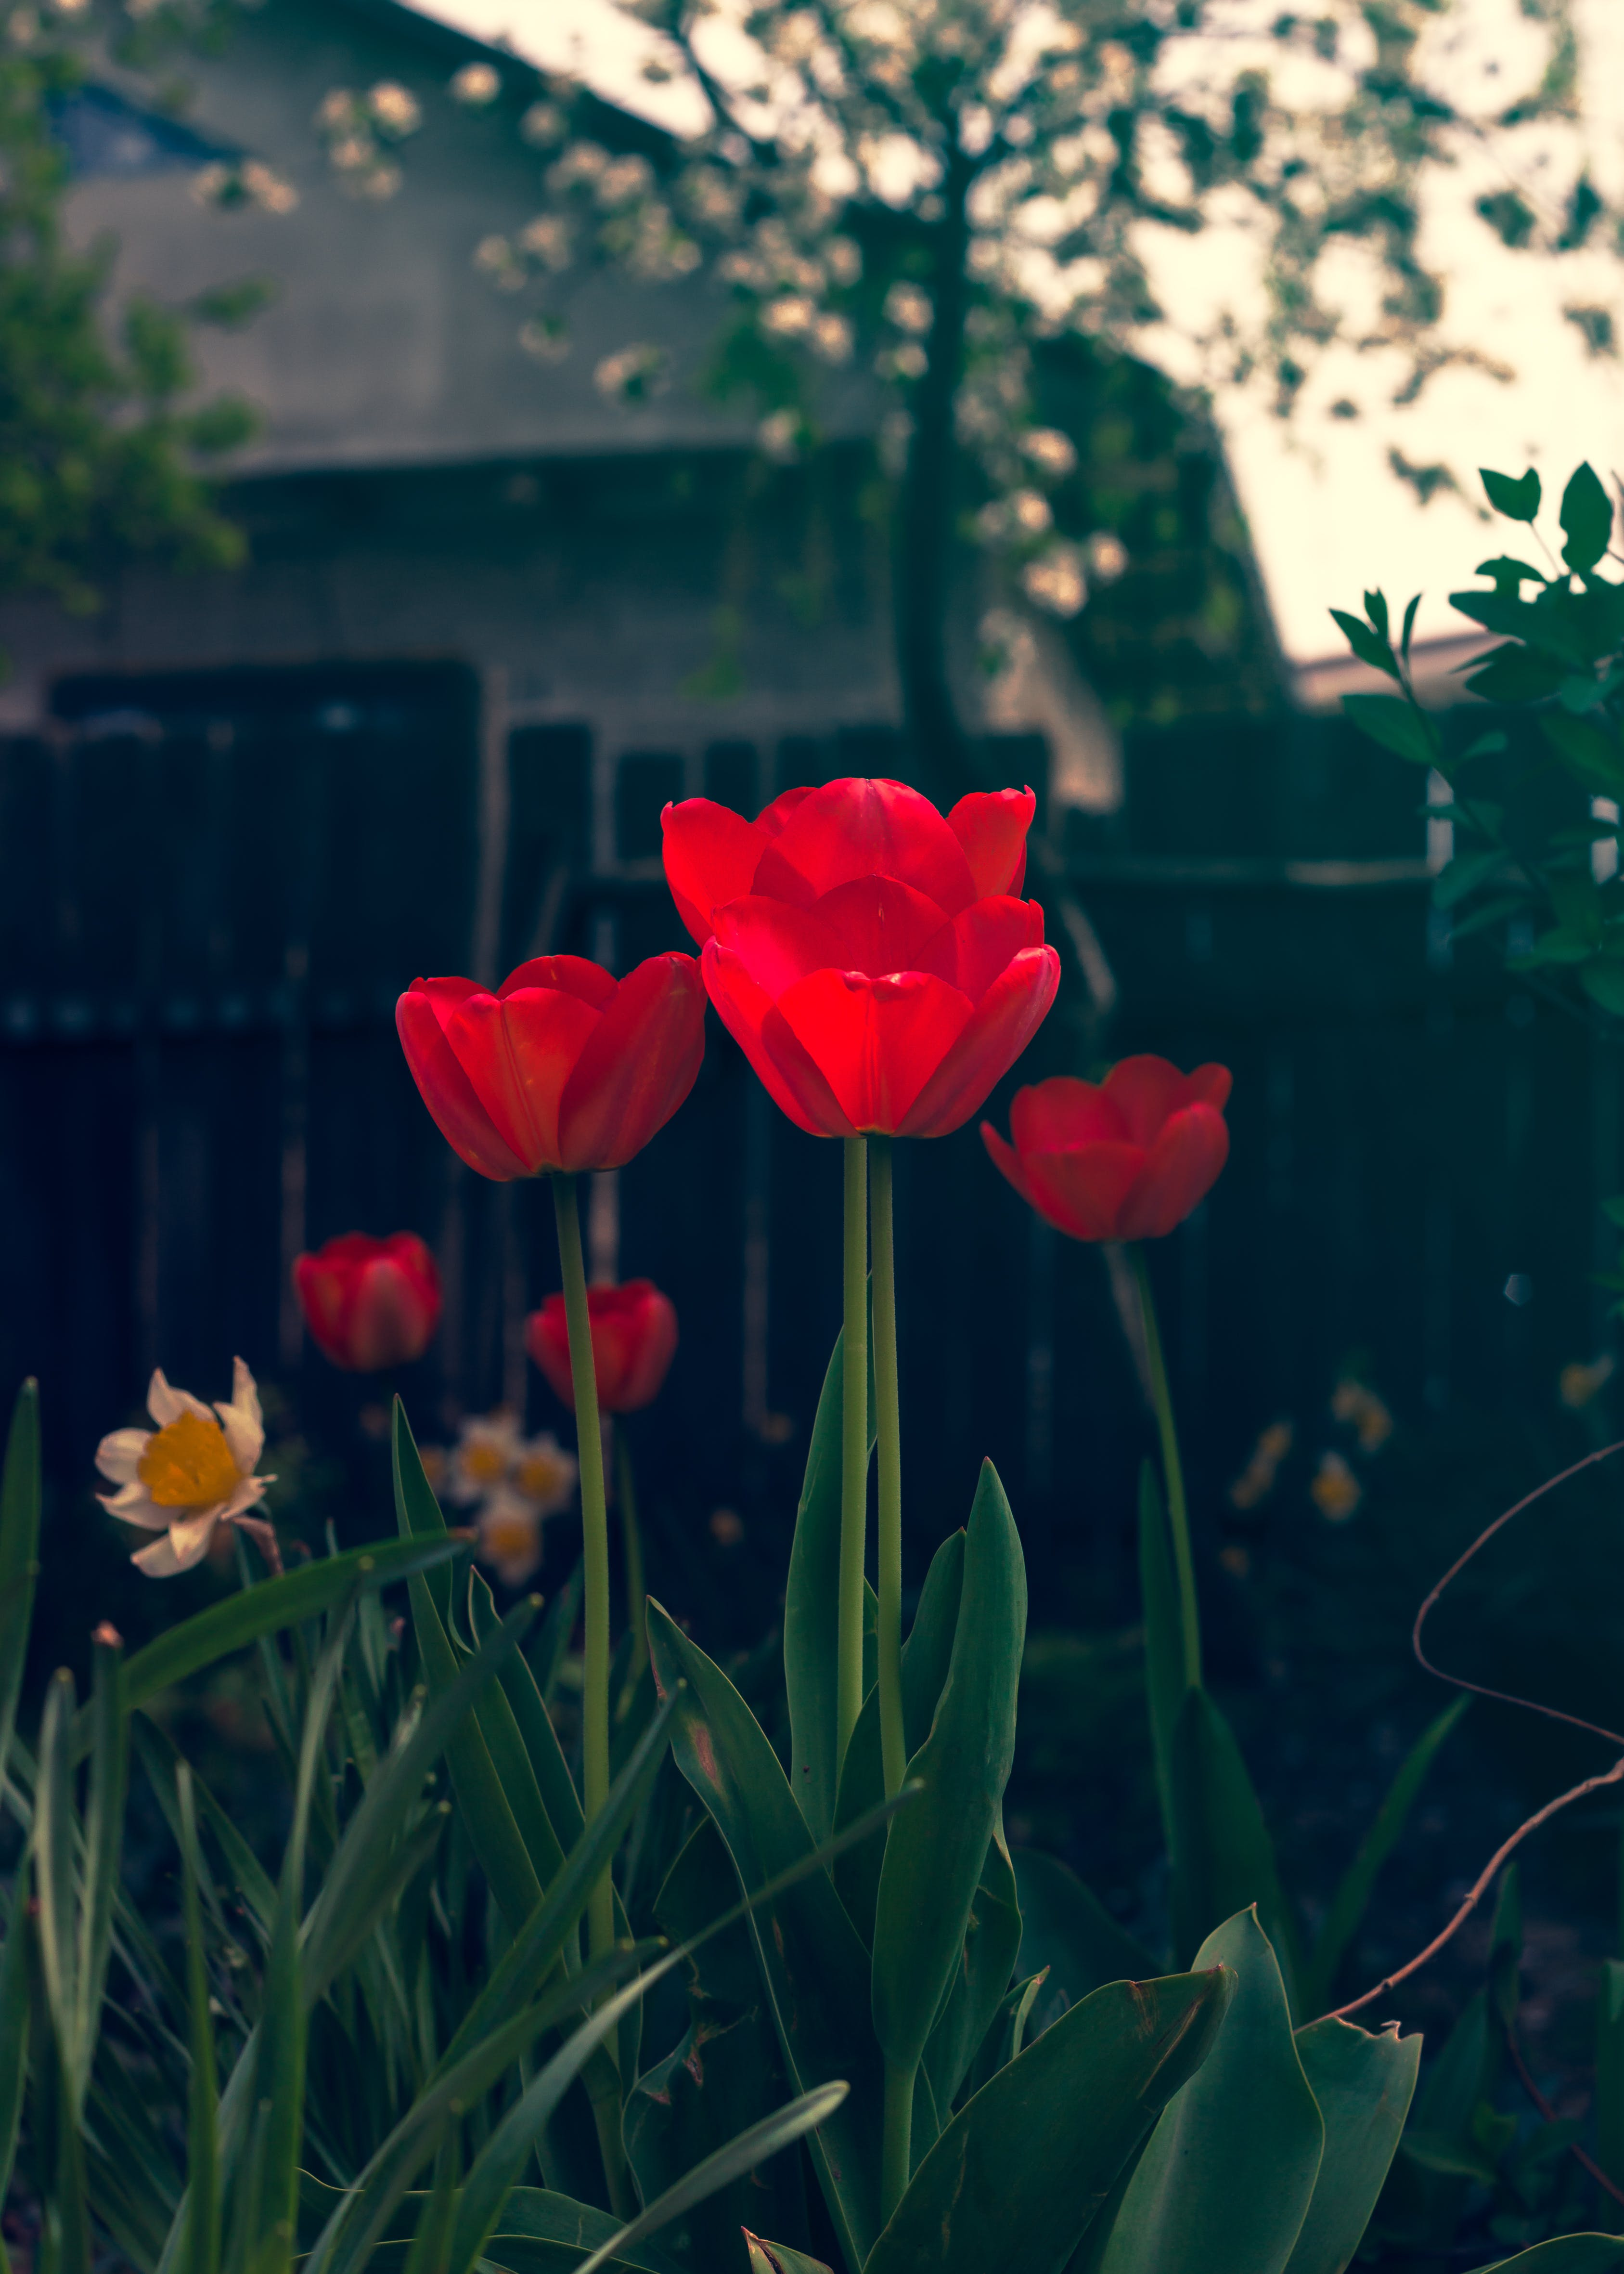 Free stock photo of nature, flowers, garden, plant